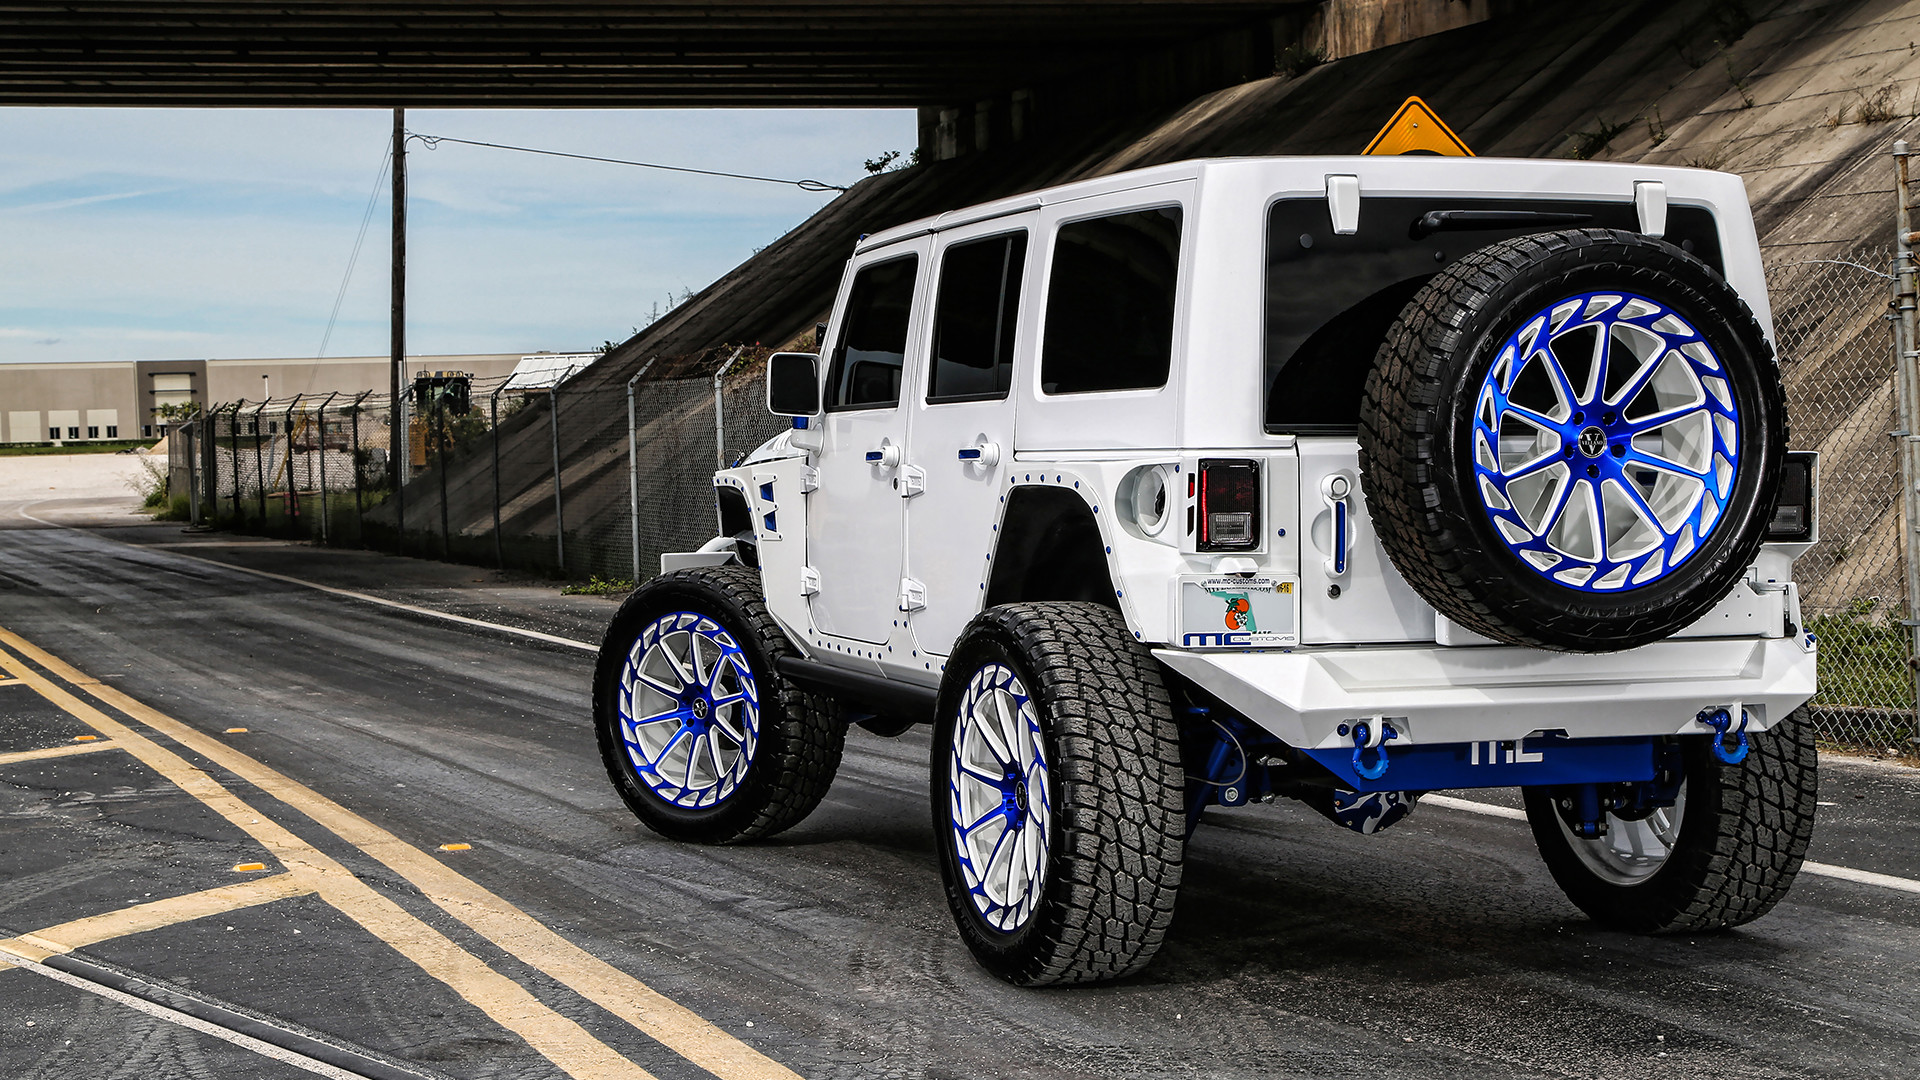 1920x1080 ... Click to enlarge image Jeep_Wrangler_White_MC_Customs_DUB_11_edit.jpg  ...